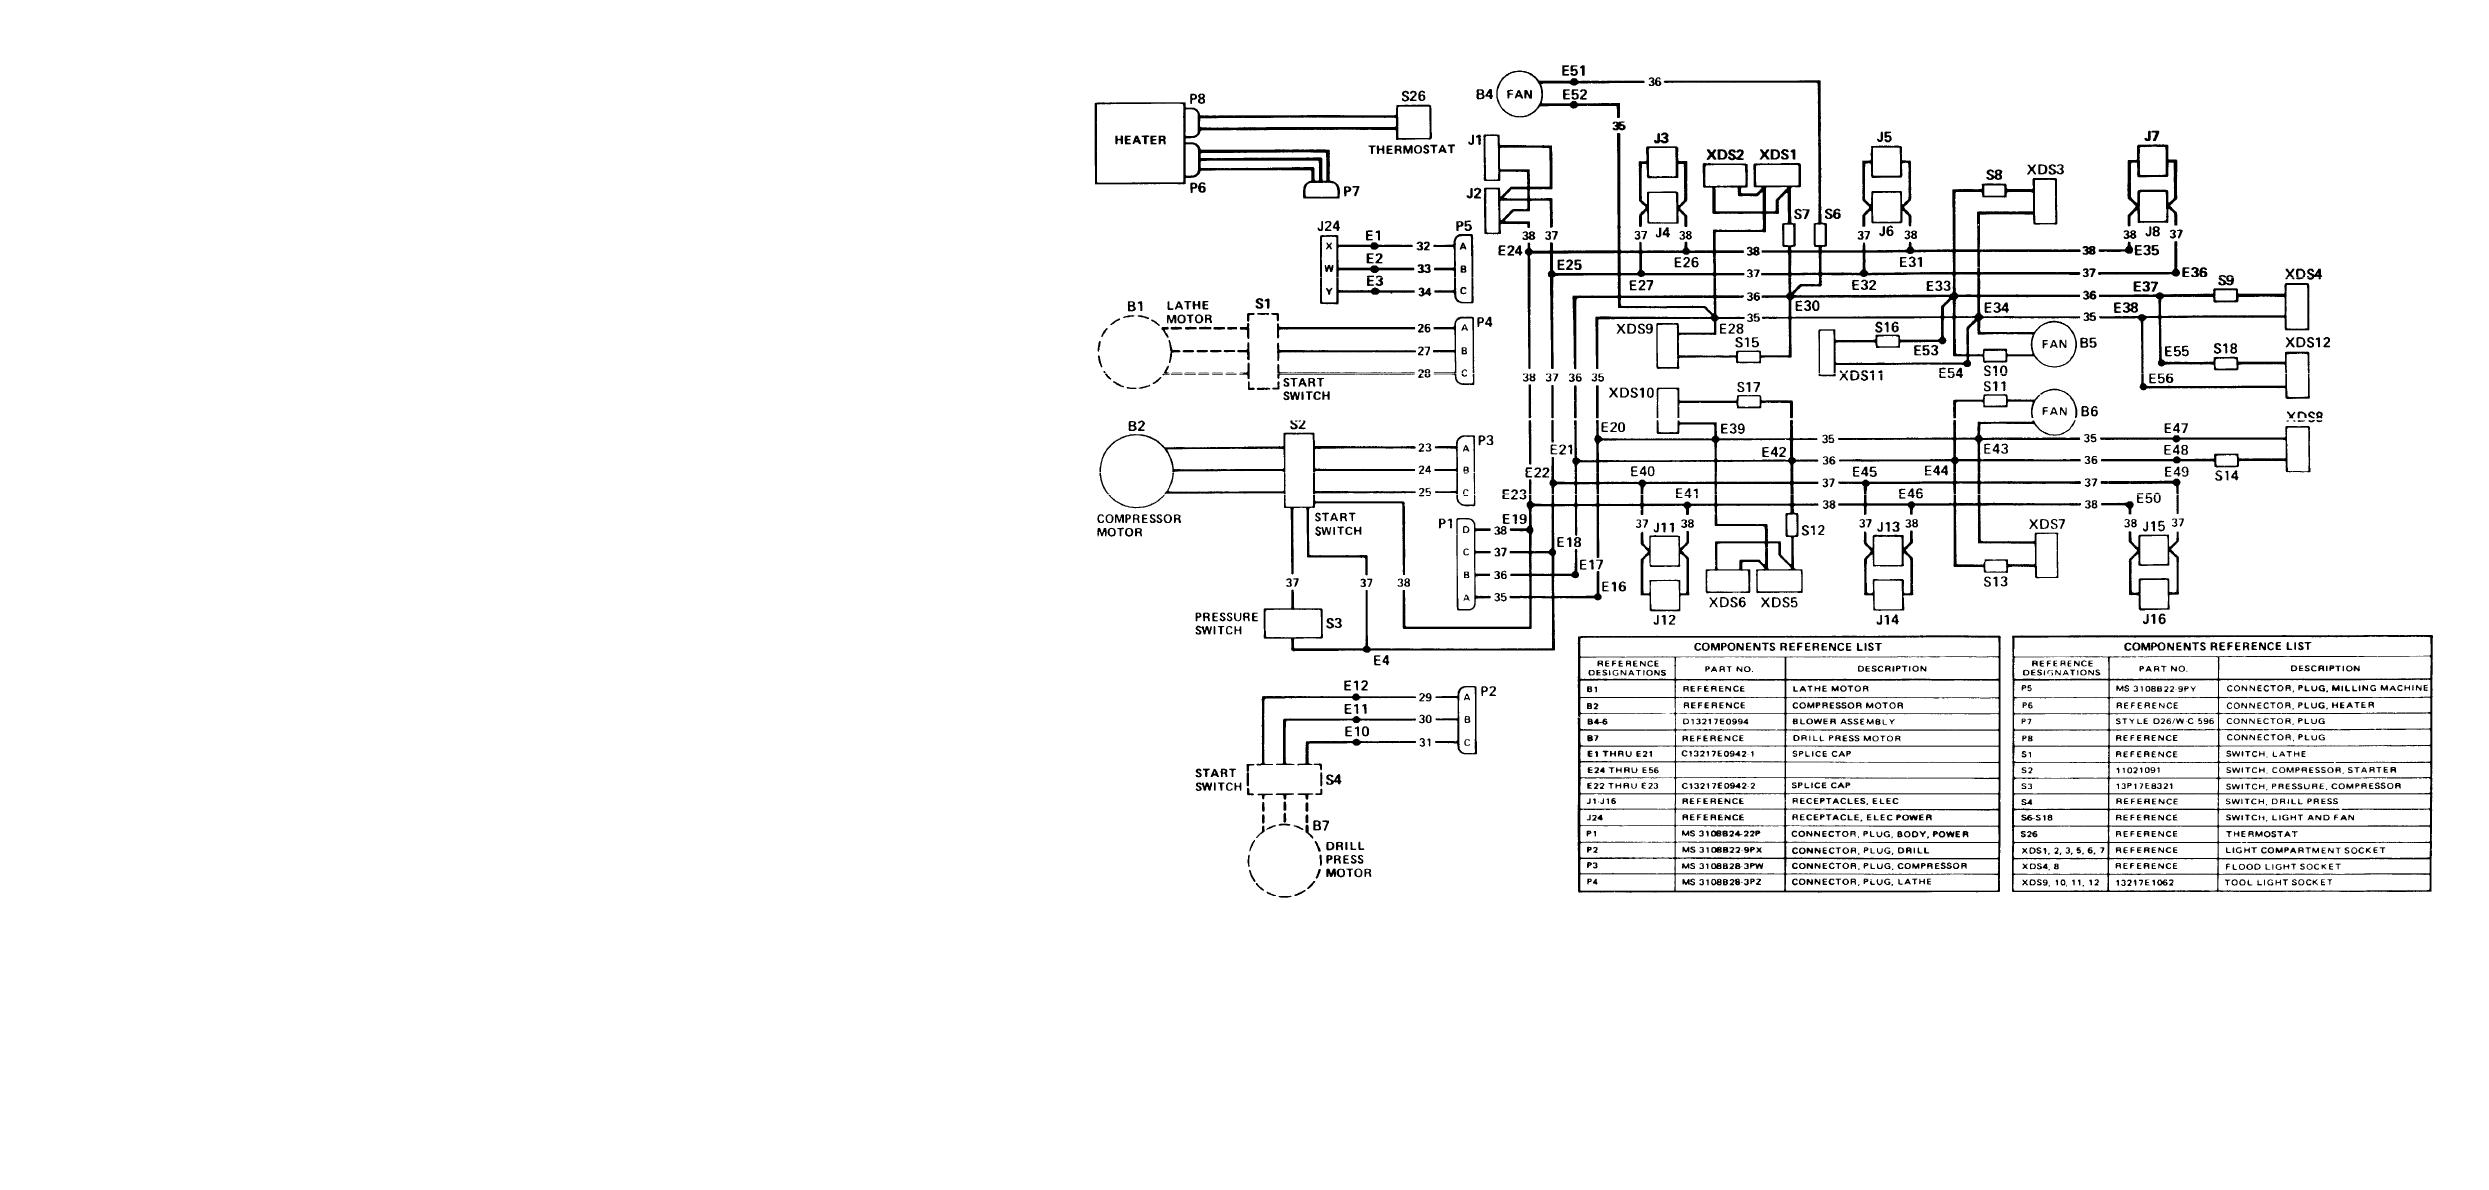 220 volt 3 phase motor wiring diagram bobcat 743 parts welder single three star